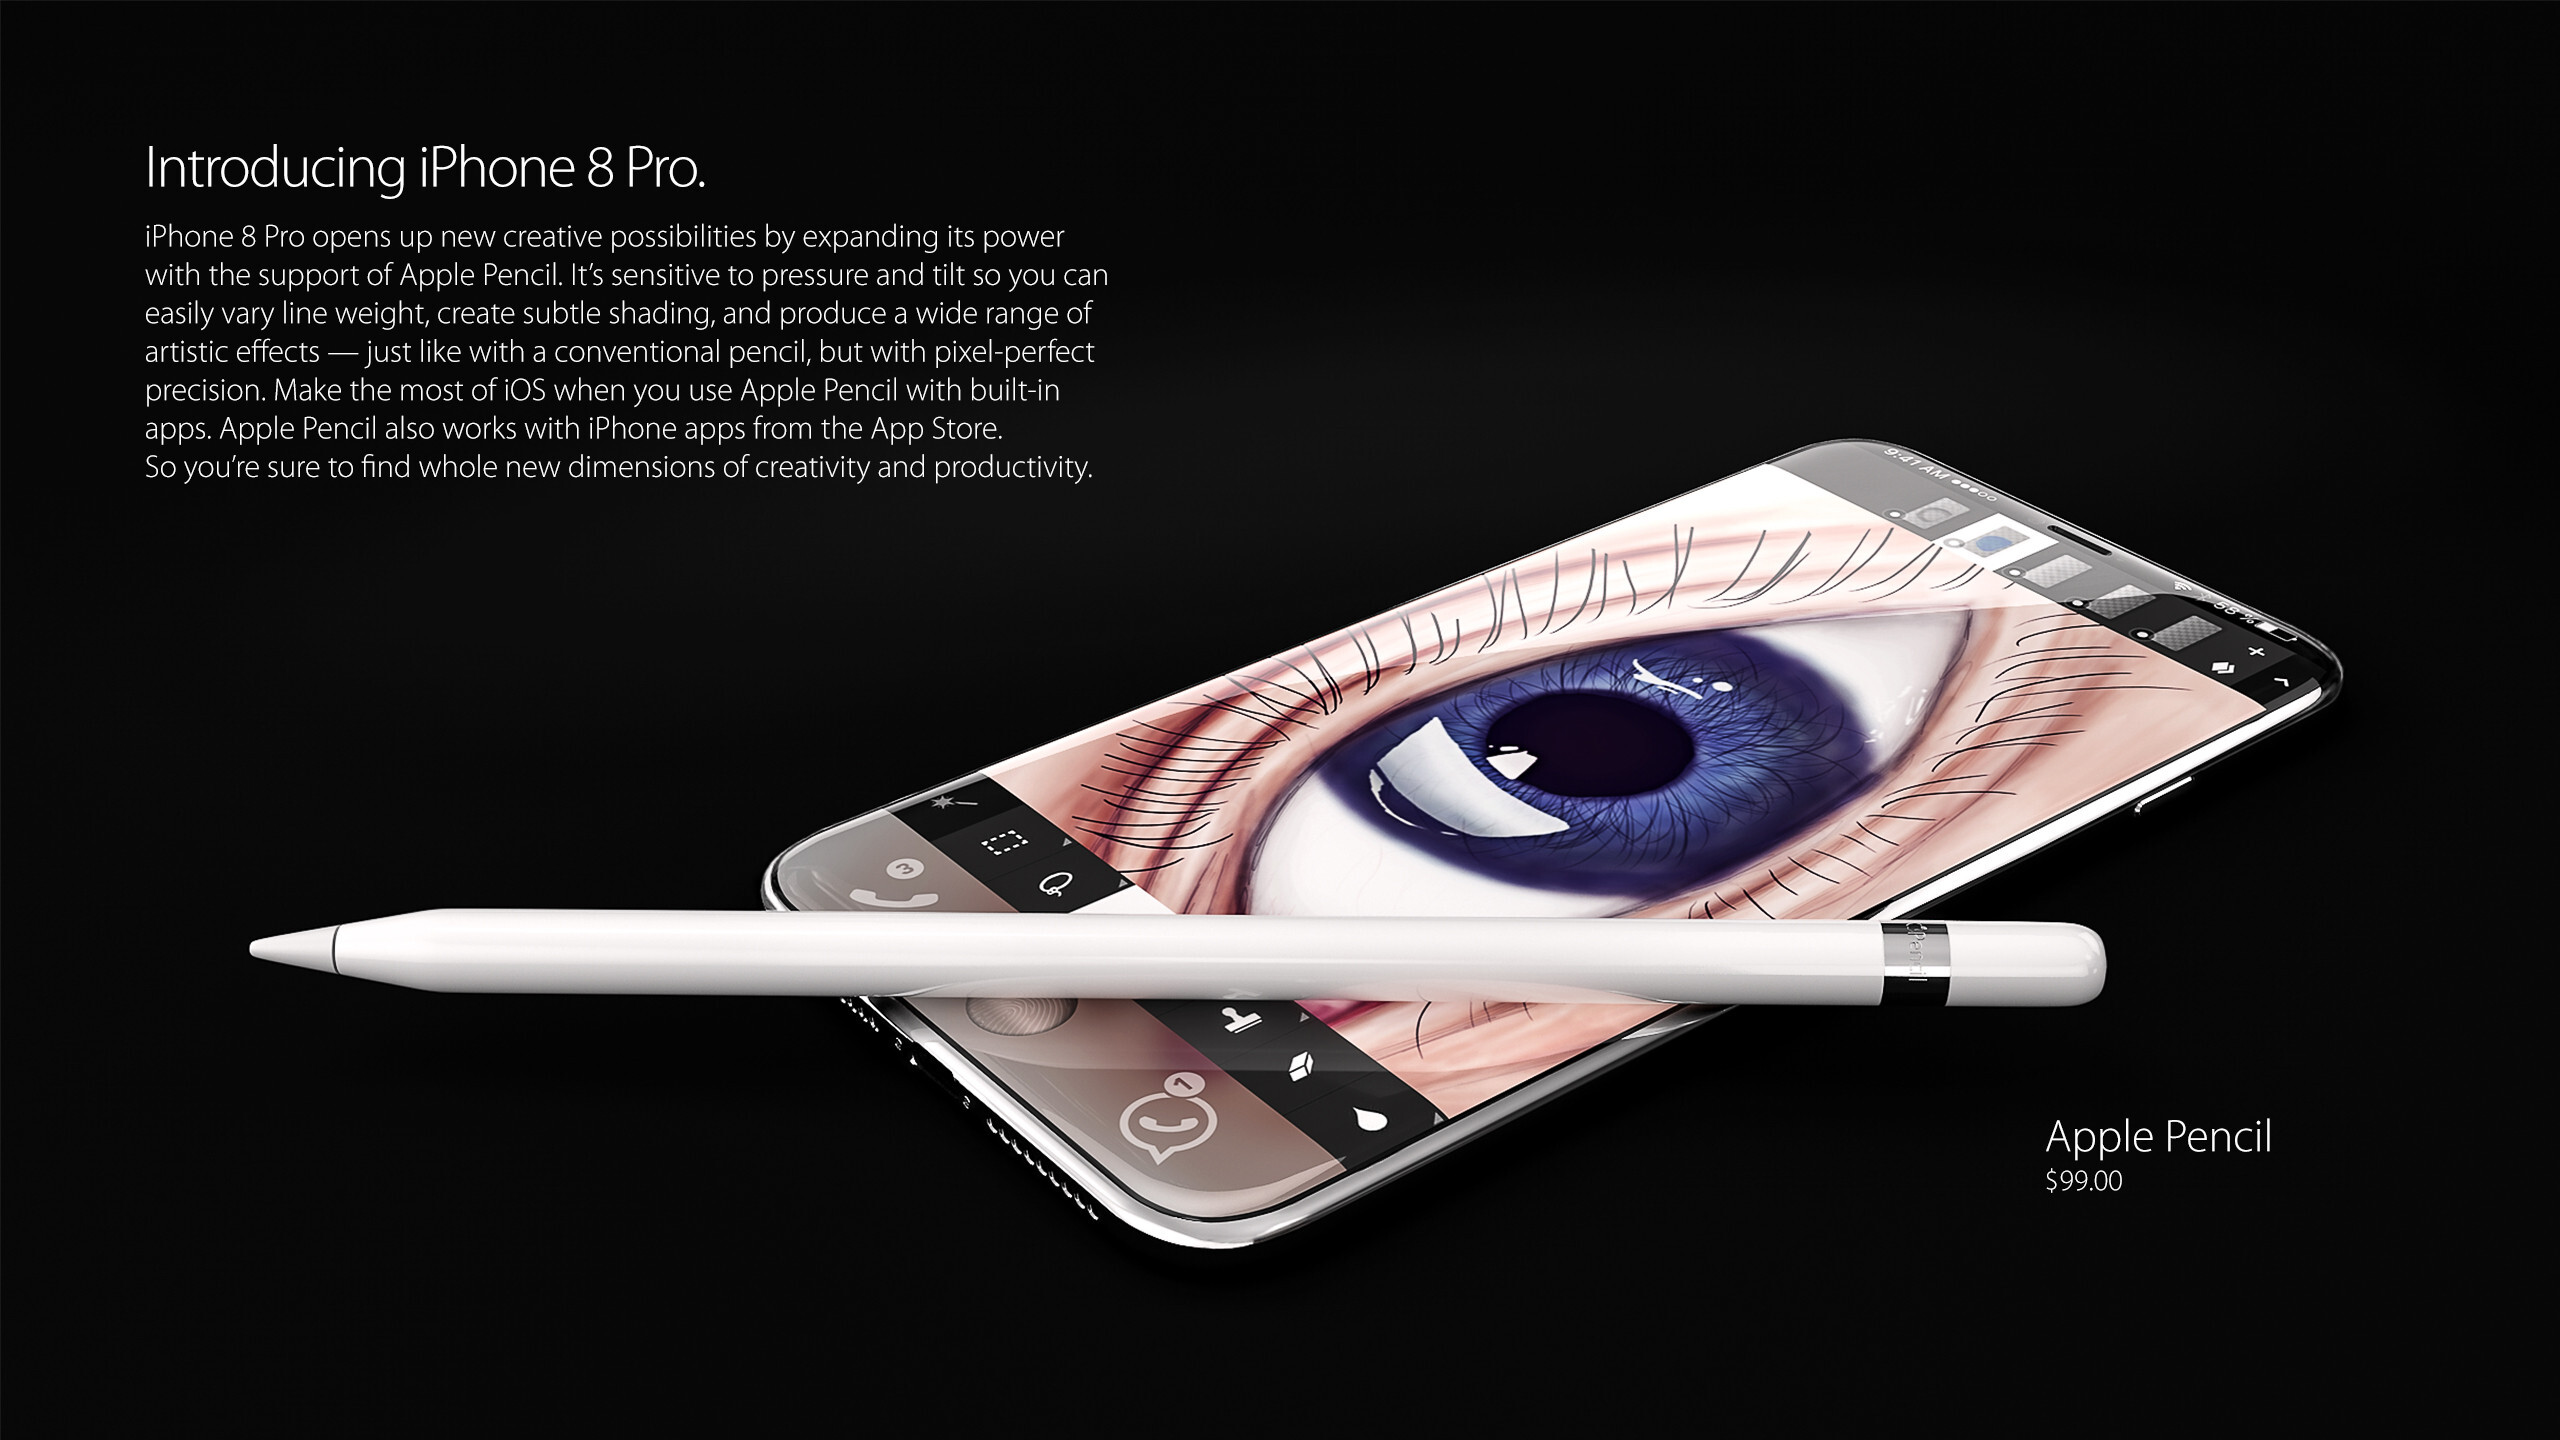 info for 5ccc0 9679a This iPhone 8 concept brings all the rumors so far to life and it's ...